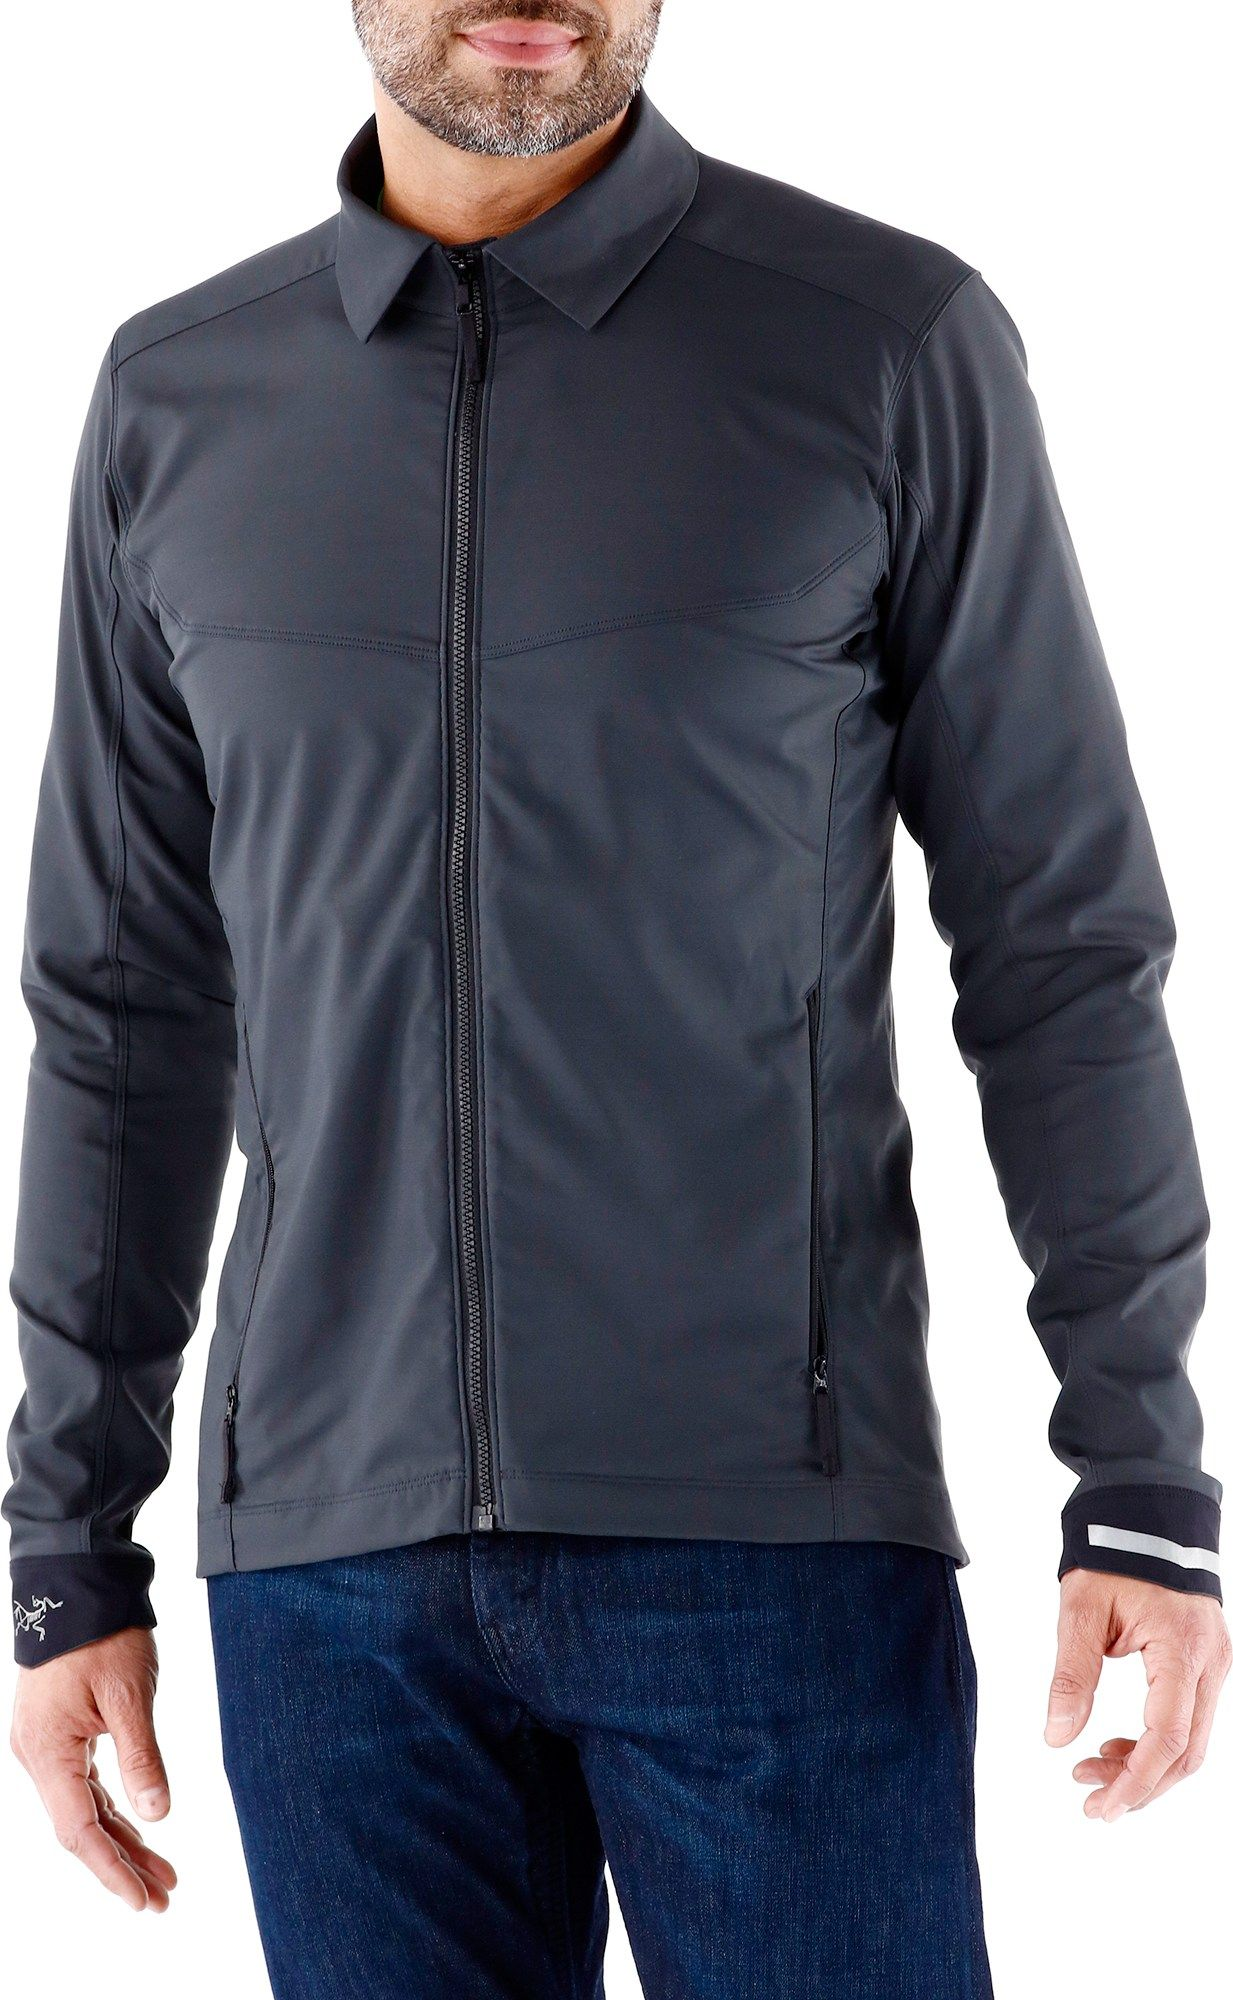 Arc'teryx A2B Commuter Bike Jacket - Men's | REI Co-op ...